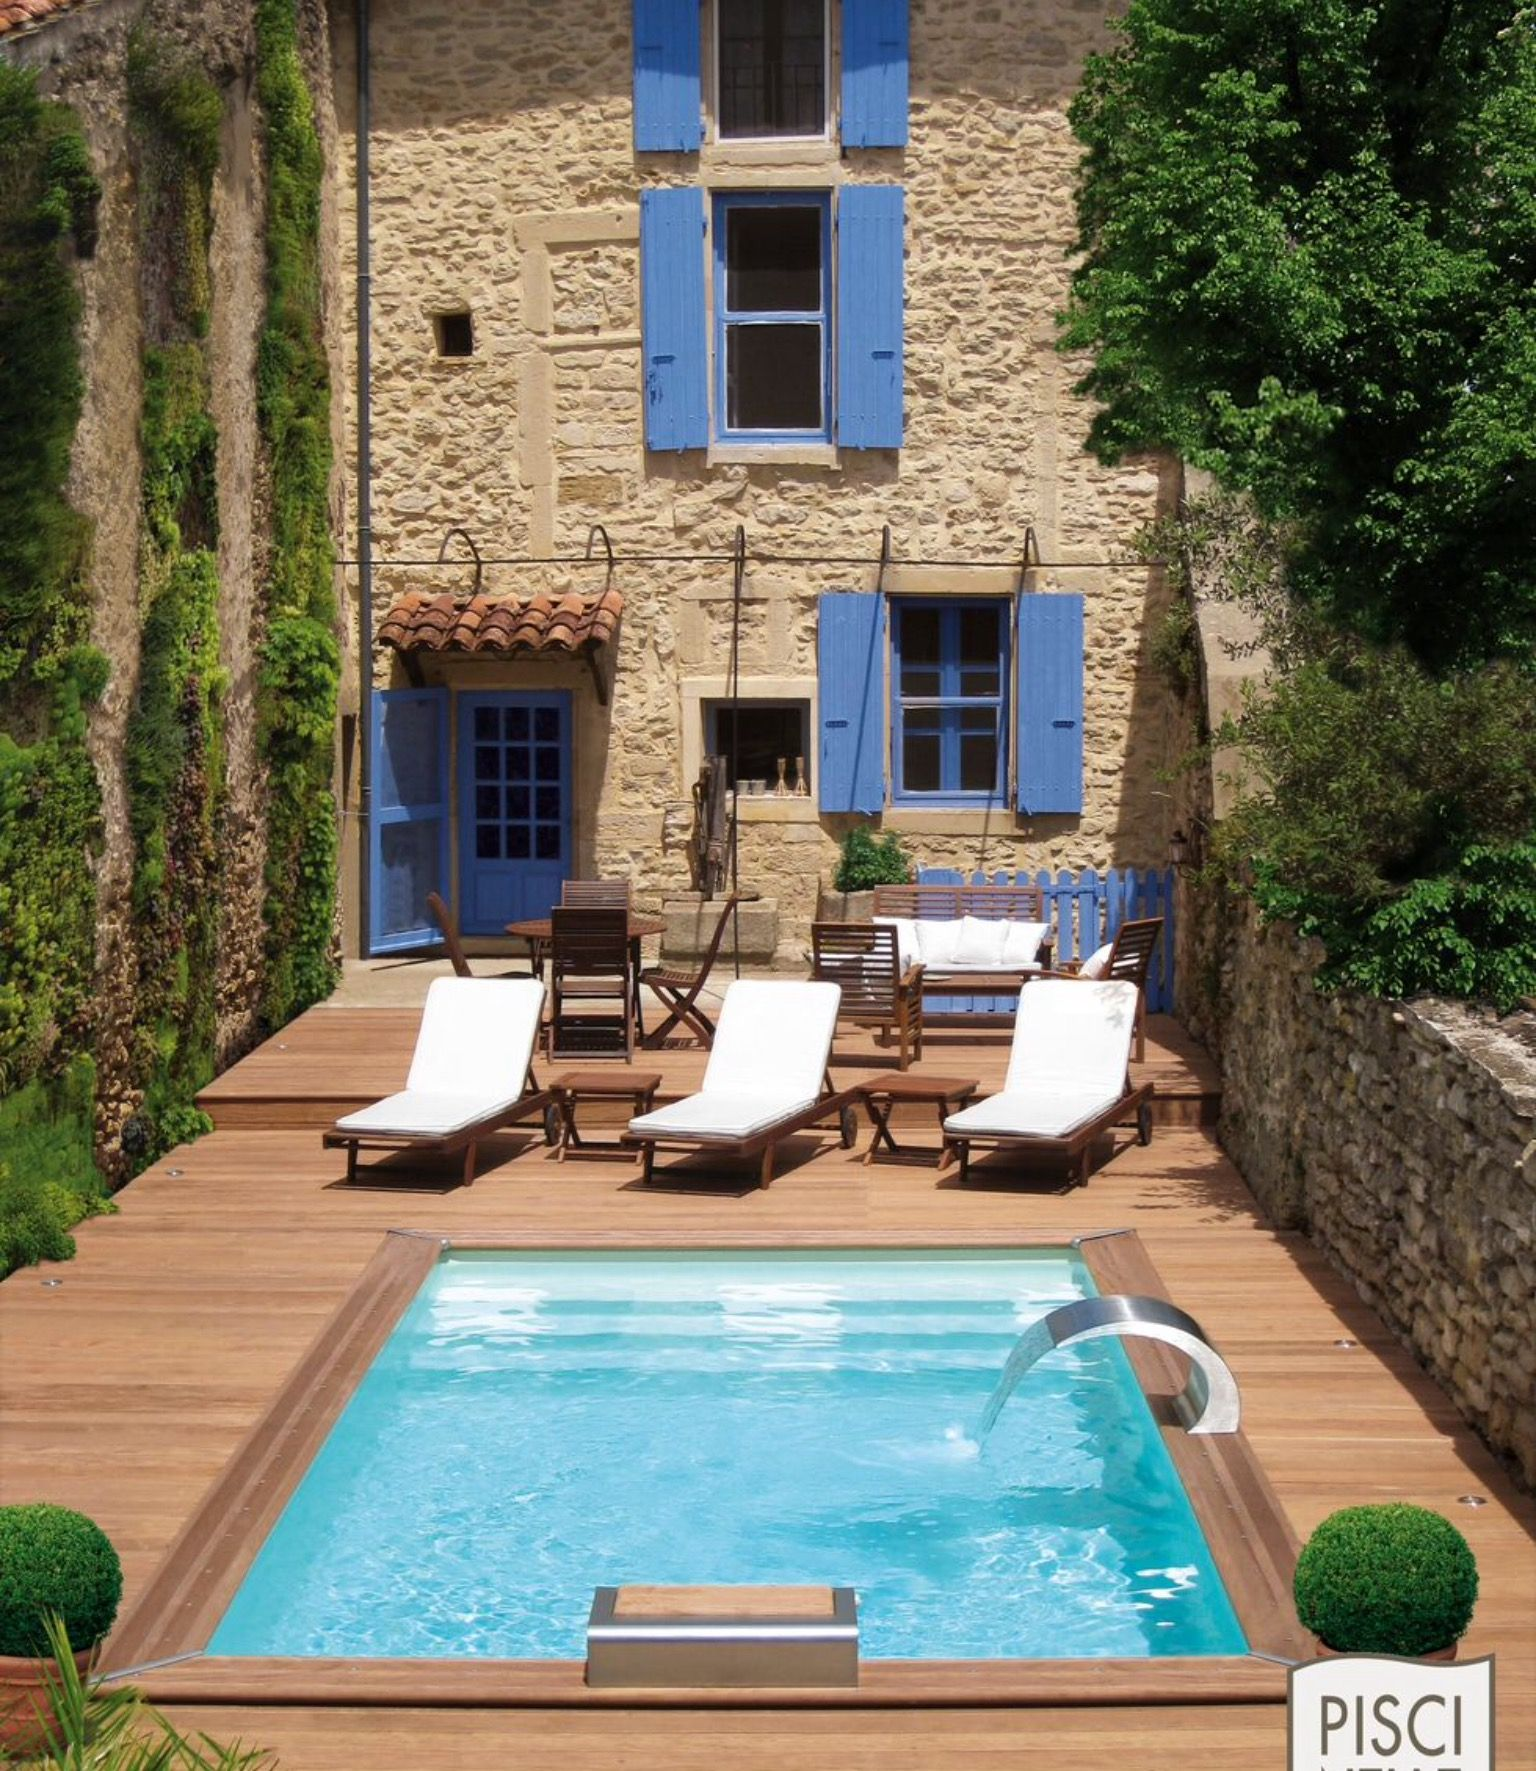 19 Swimming Pool Ideas For A Small Backyard Spaces Decor